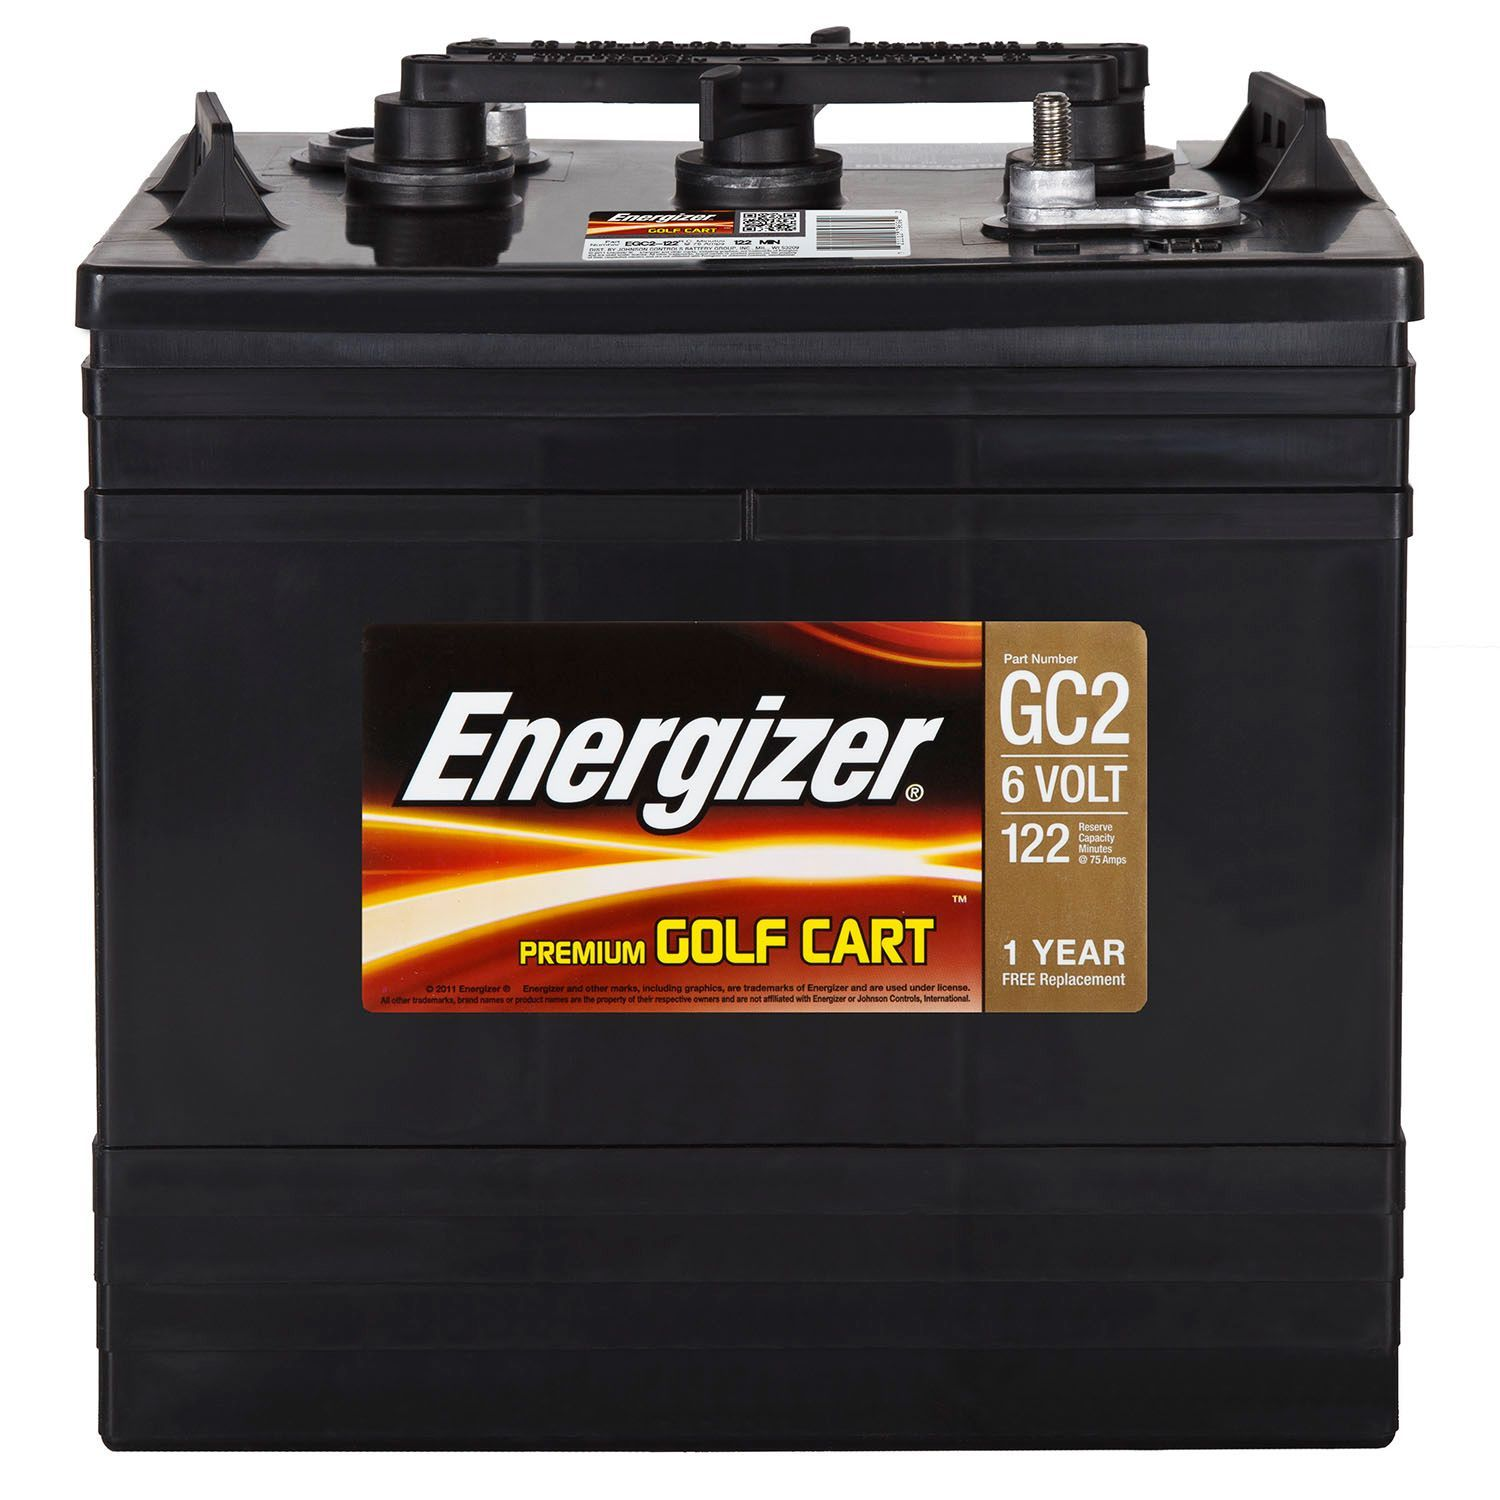 energizer 6 volt premium golf cart battery group size. Black Bedroom Furniture Sets. Home Design Ideas